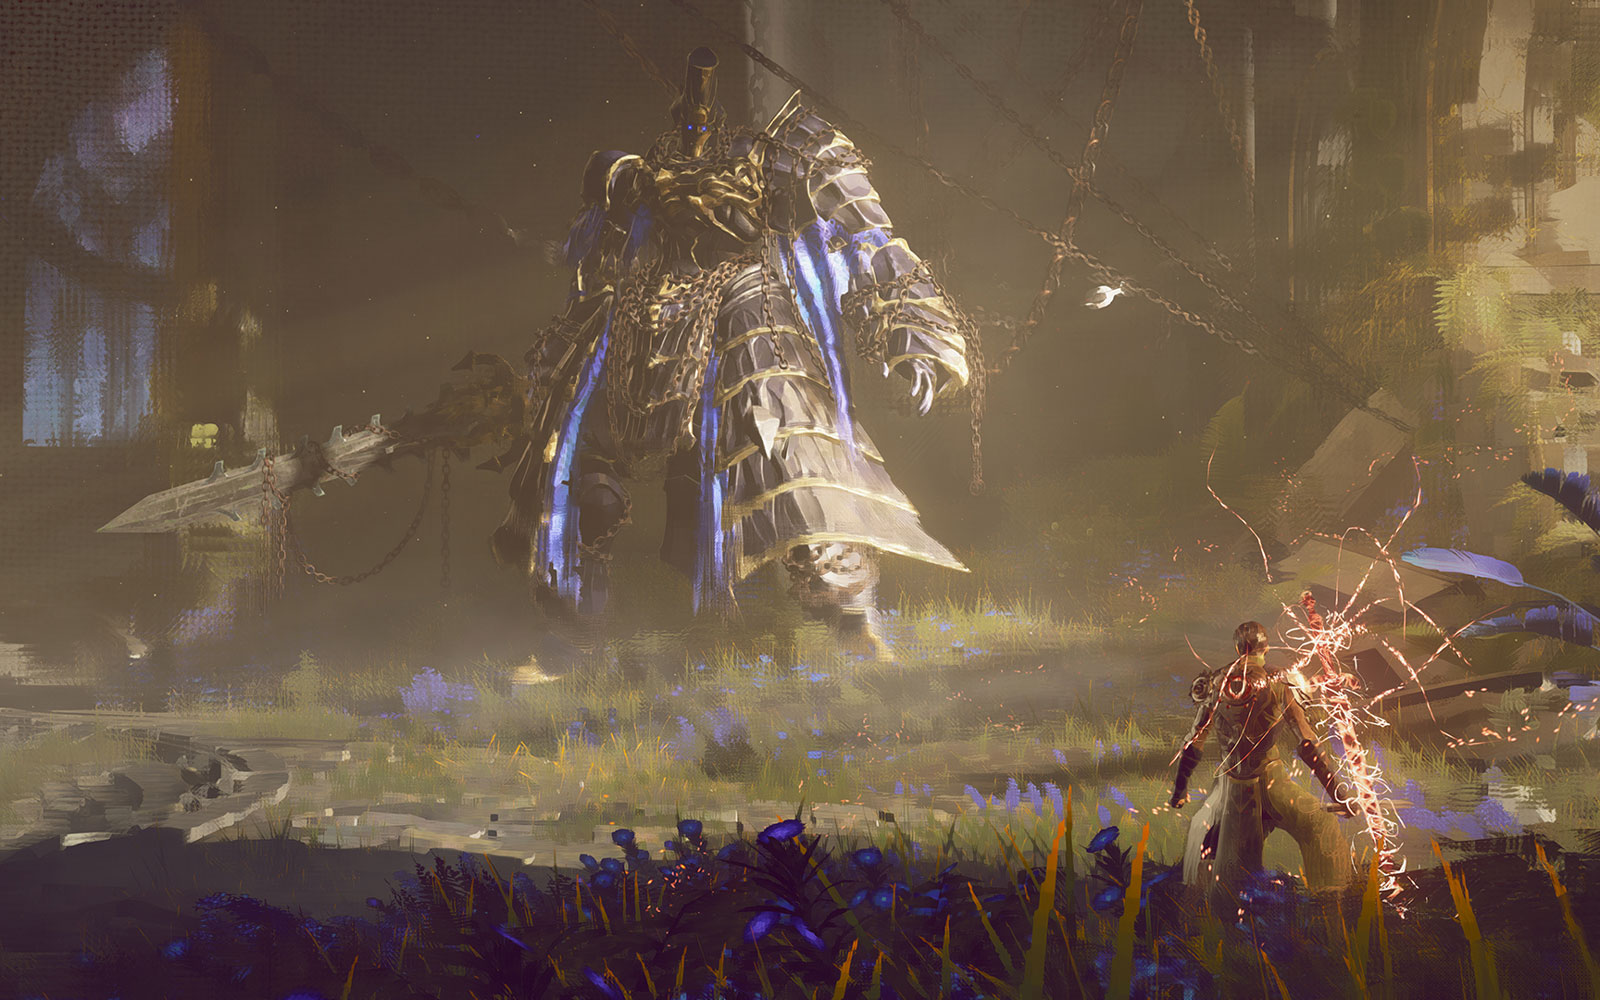 Square Enix will show off 'Babylon's Fall' from PlatinumGames during E3